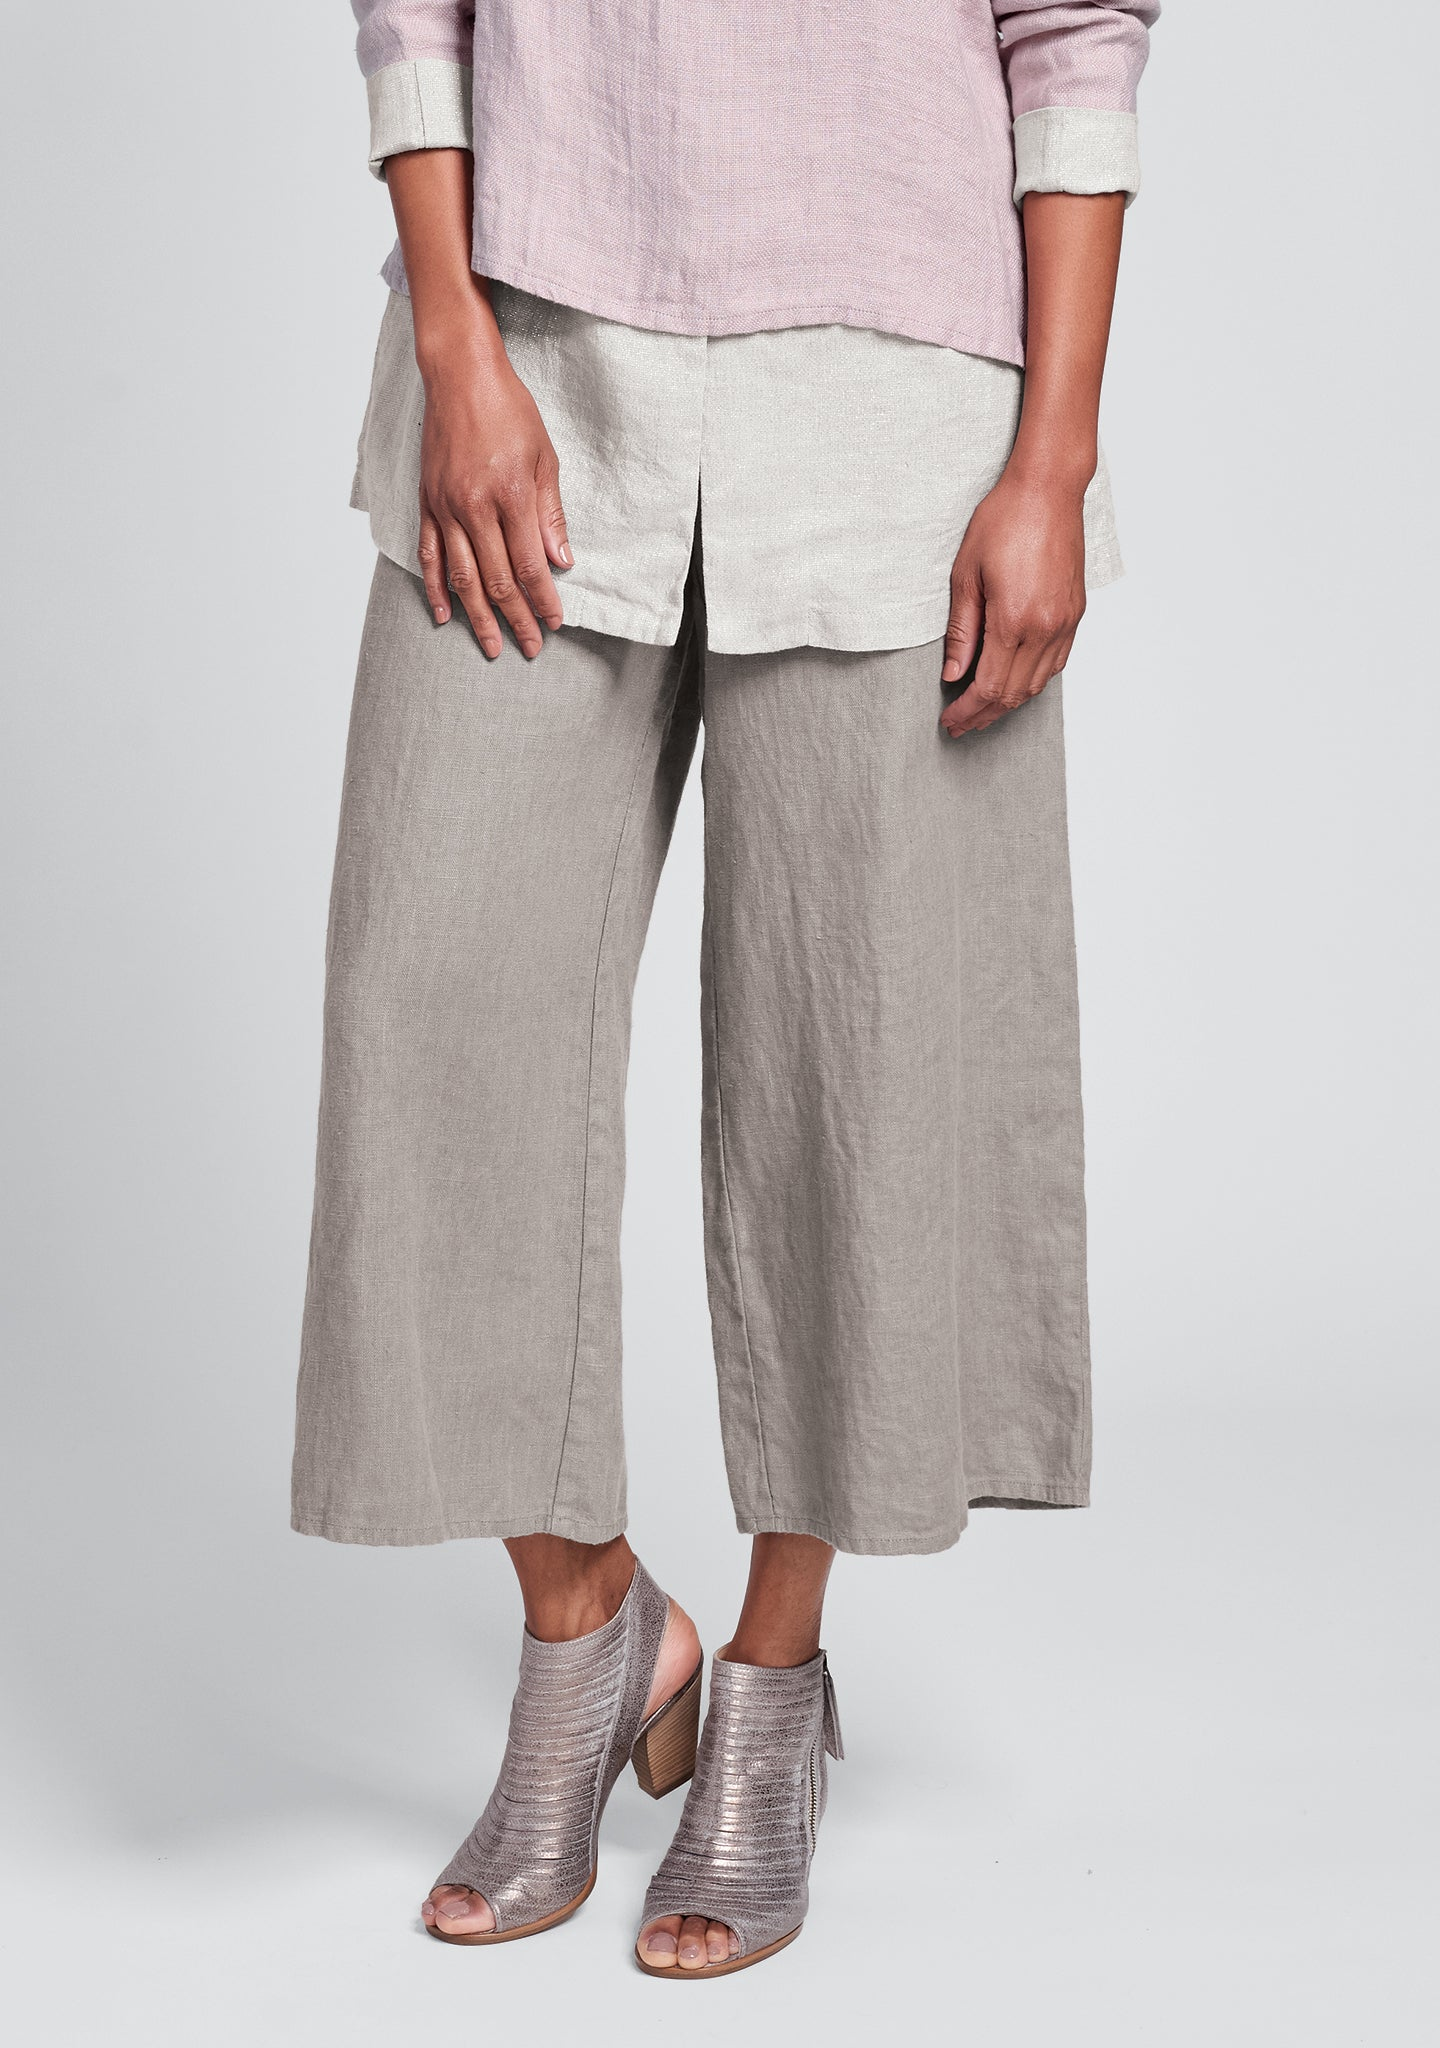 sociable flood wide leg linen pants natural